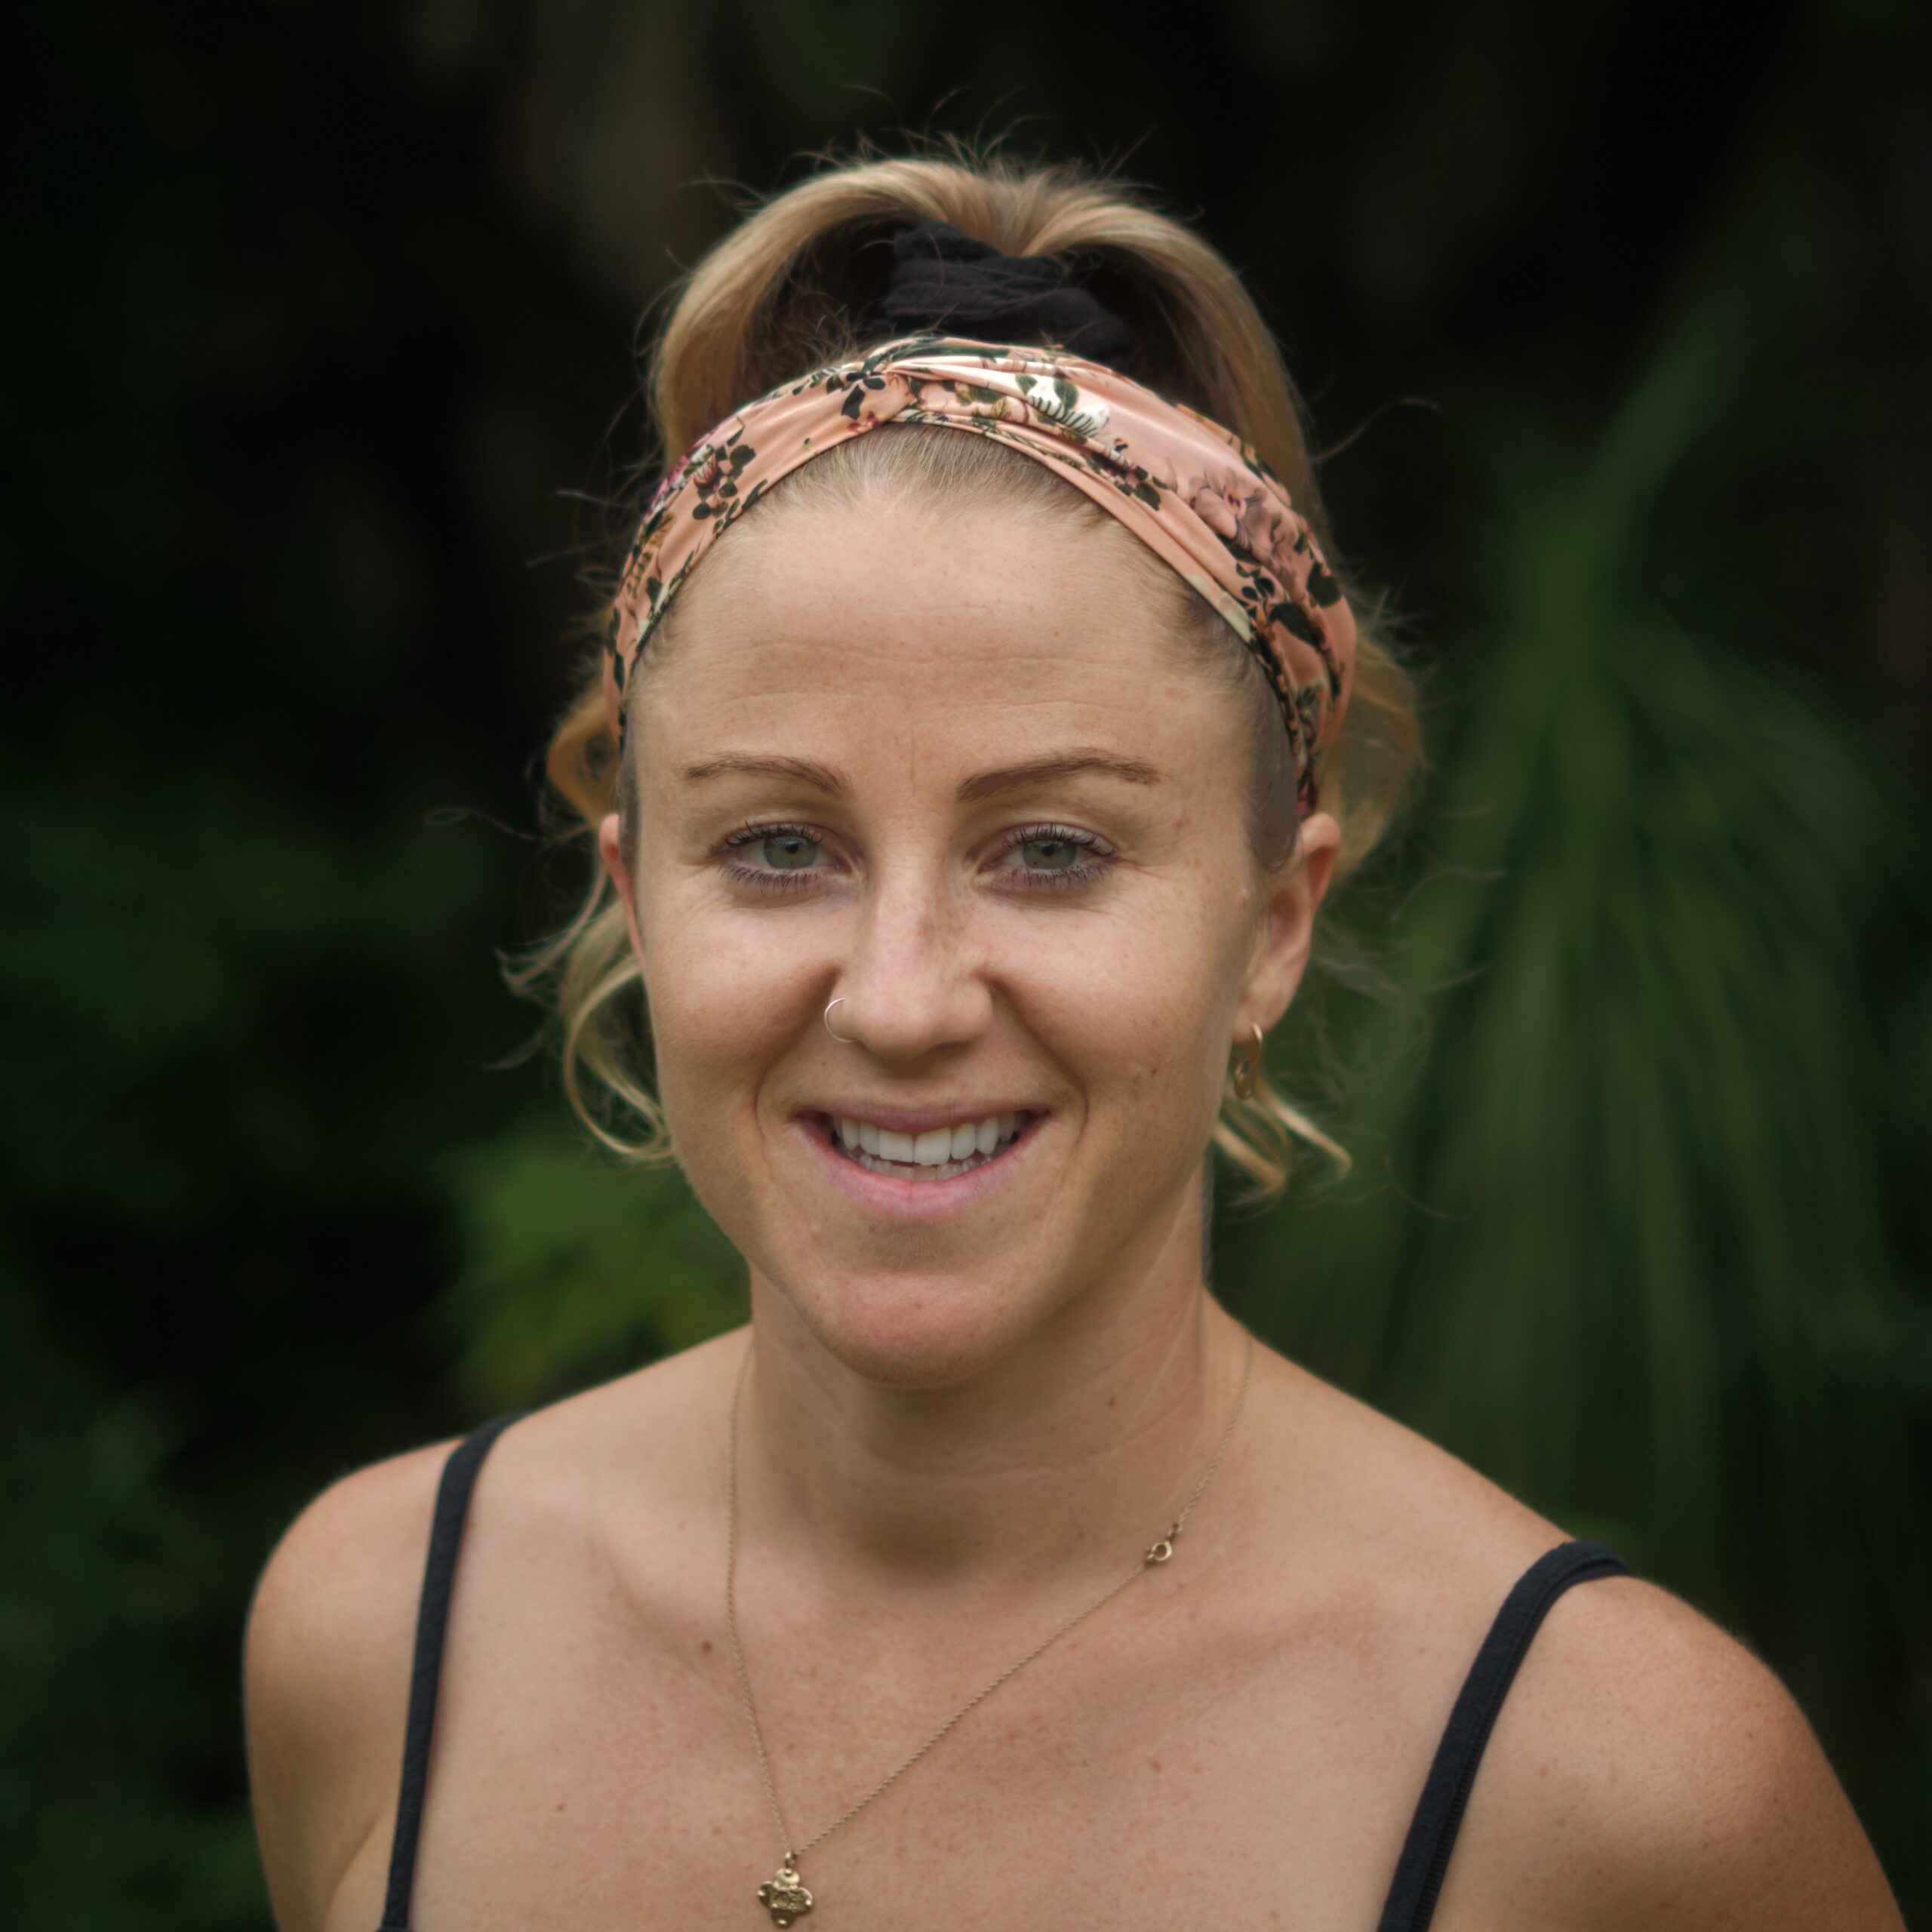 michelle hammond smiles at the camera. She is standing outside in the gardern and has her hair tied up and a head scarf on.